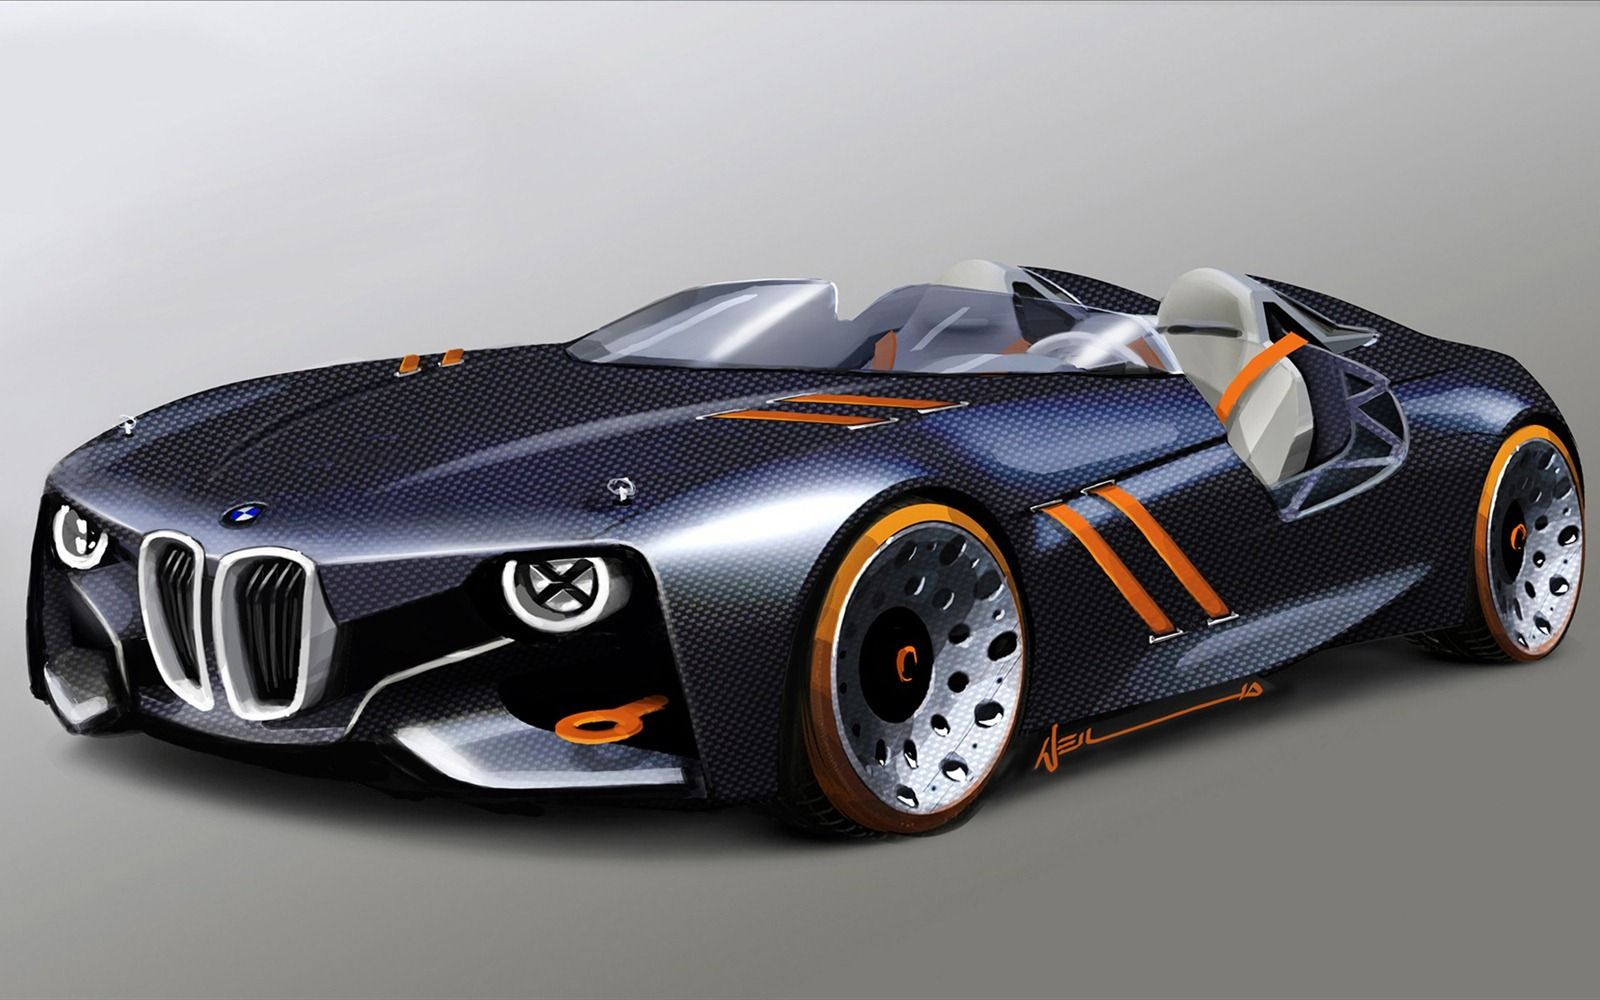 Hot Bmw Cars 2017 328 Hommage Concept 1920 1200 Wallpapers Click For Large